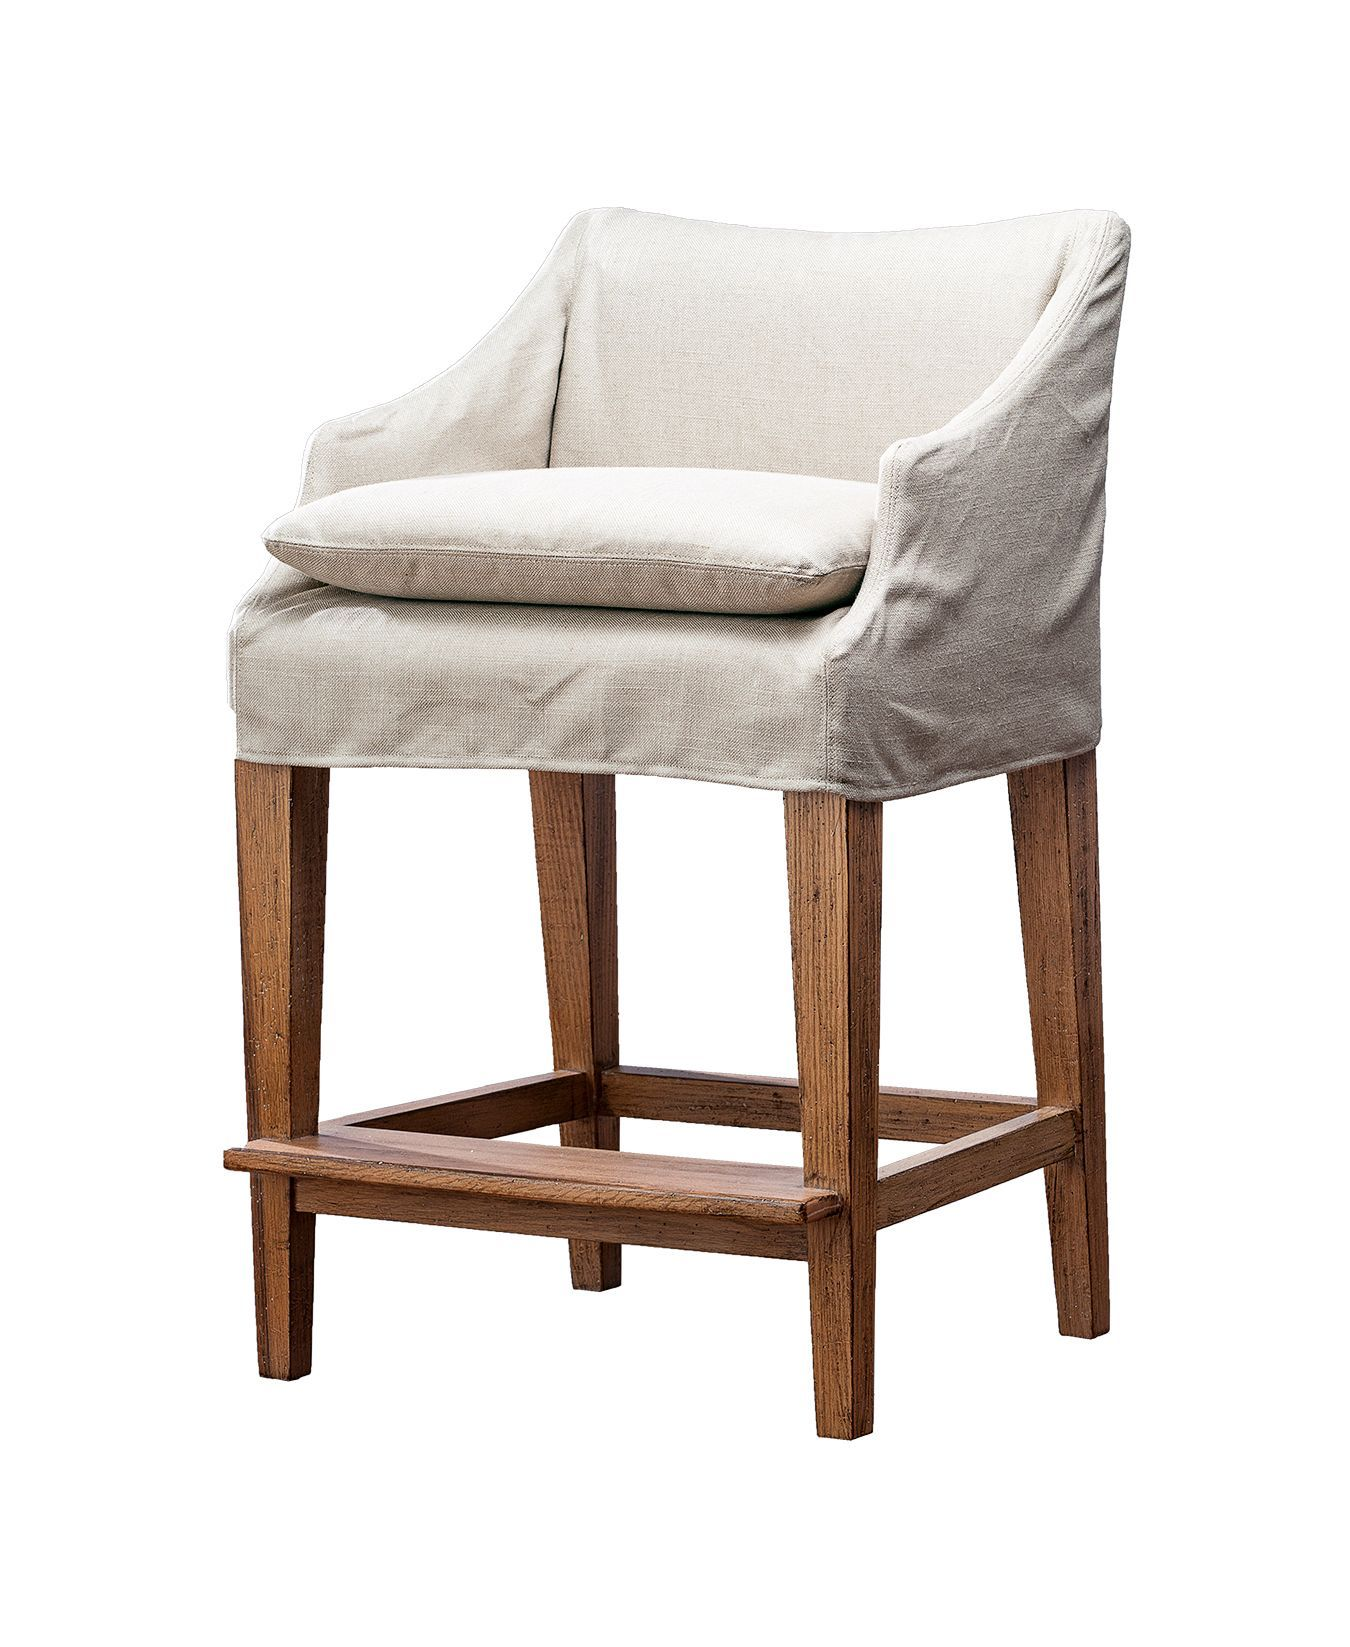 Callen Counter Stool Counter Stools Stool New Furniture